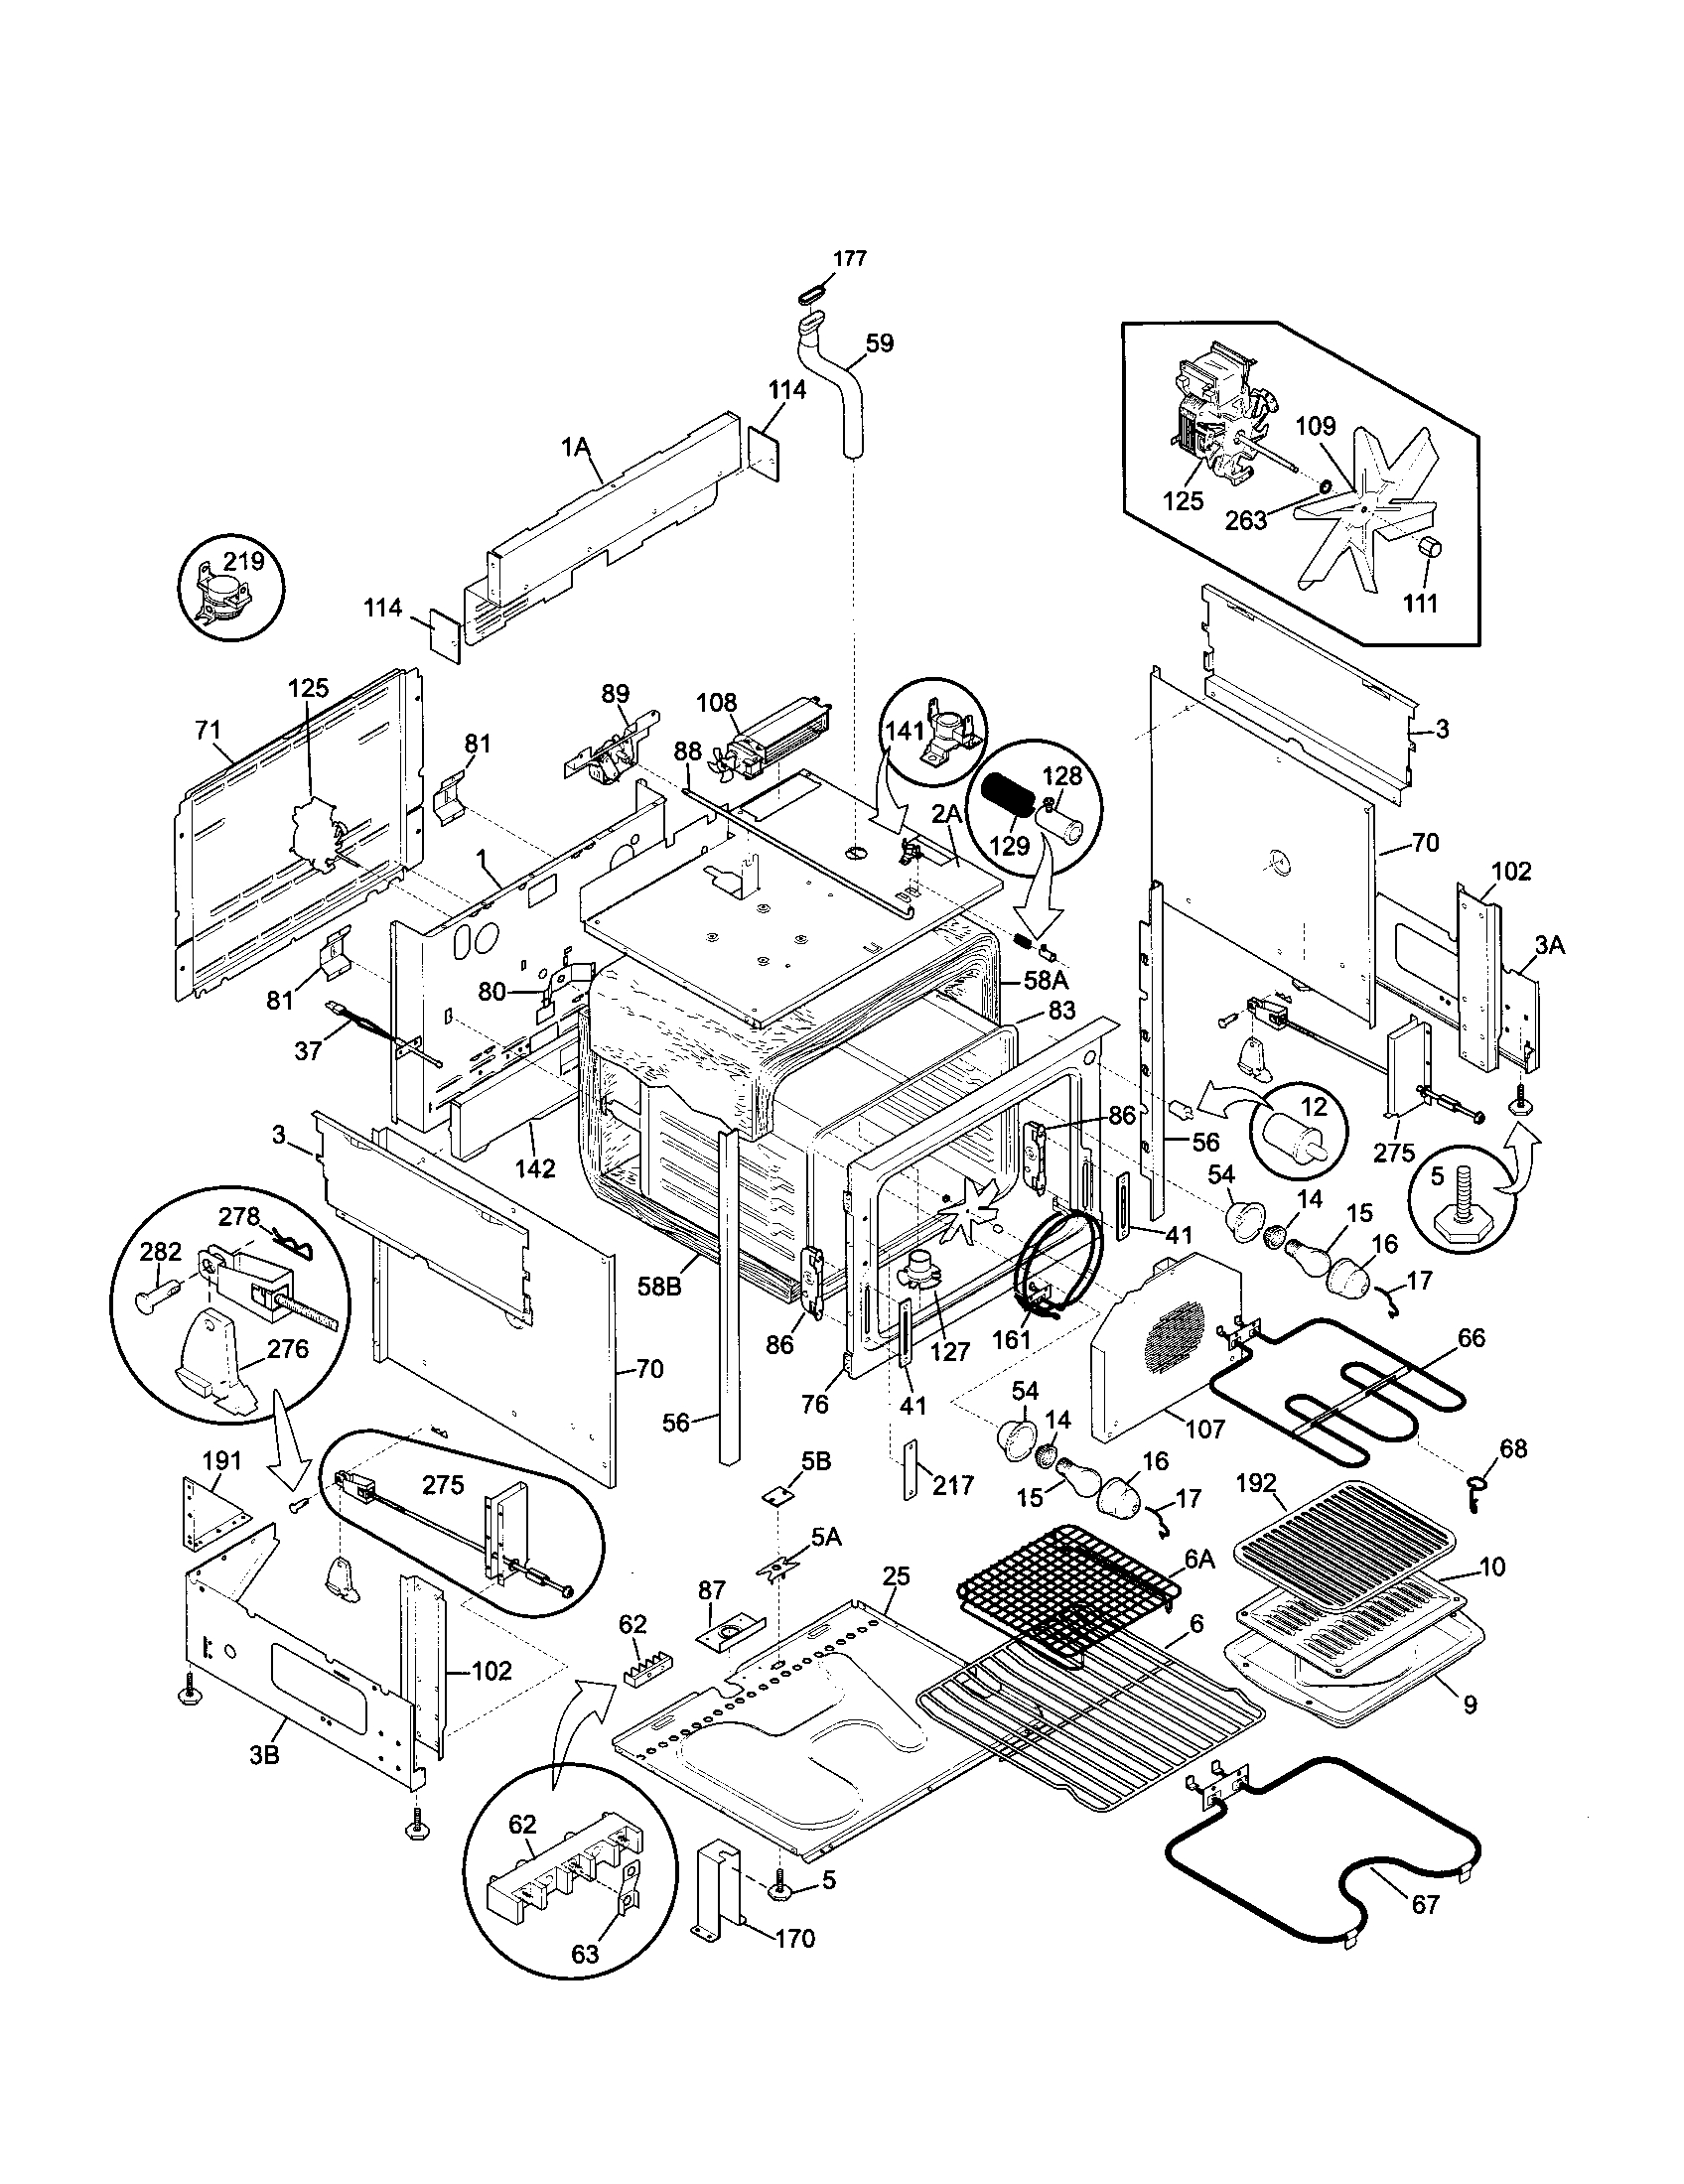 Kenmore Elite Dryer Wiring Diagram : 34 Wiring Diagram